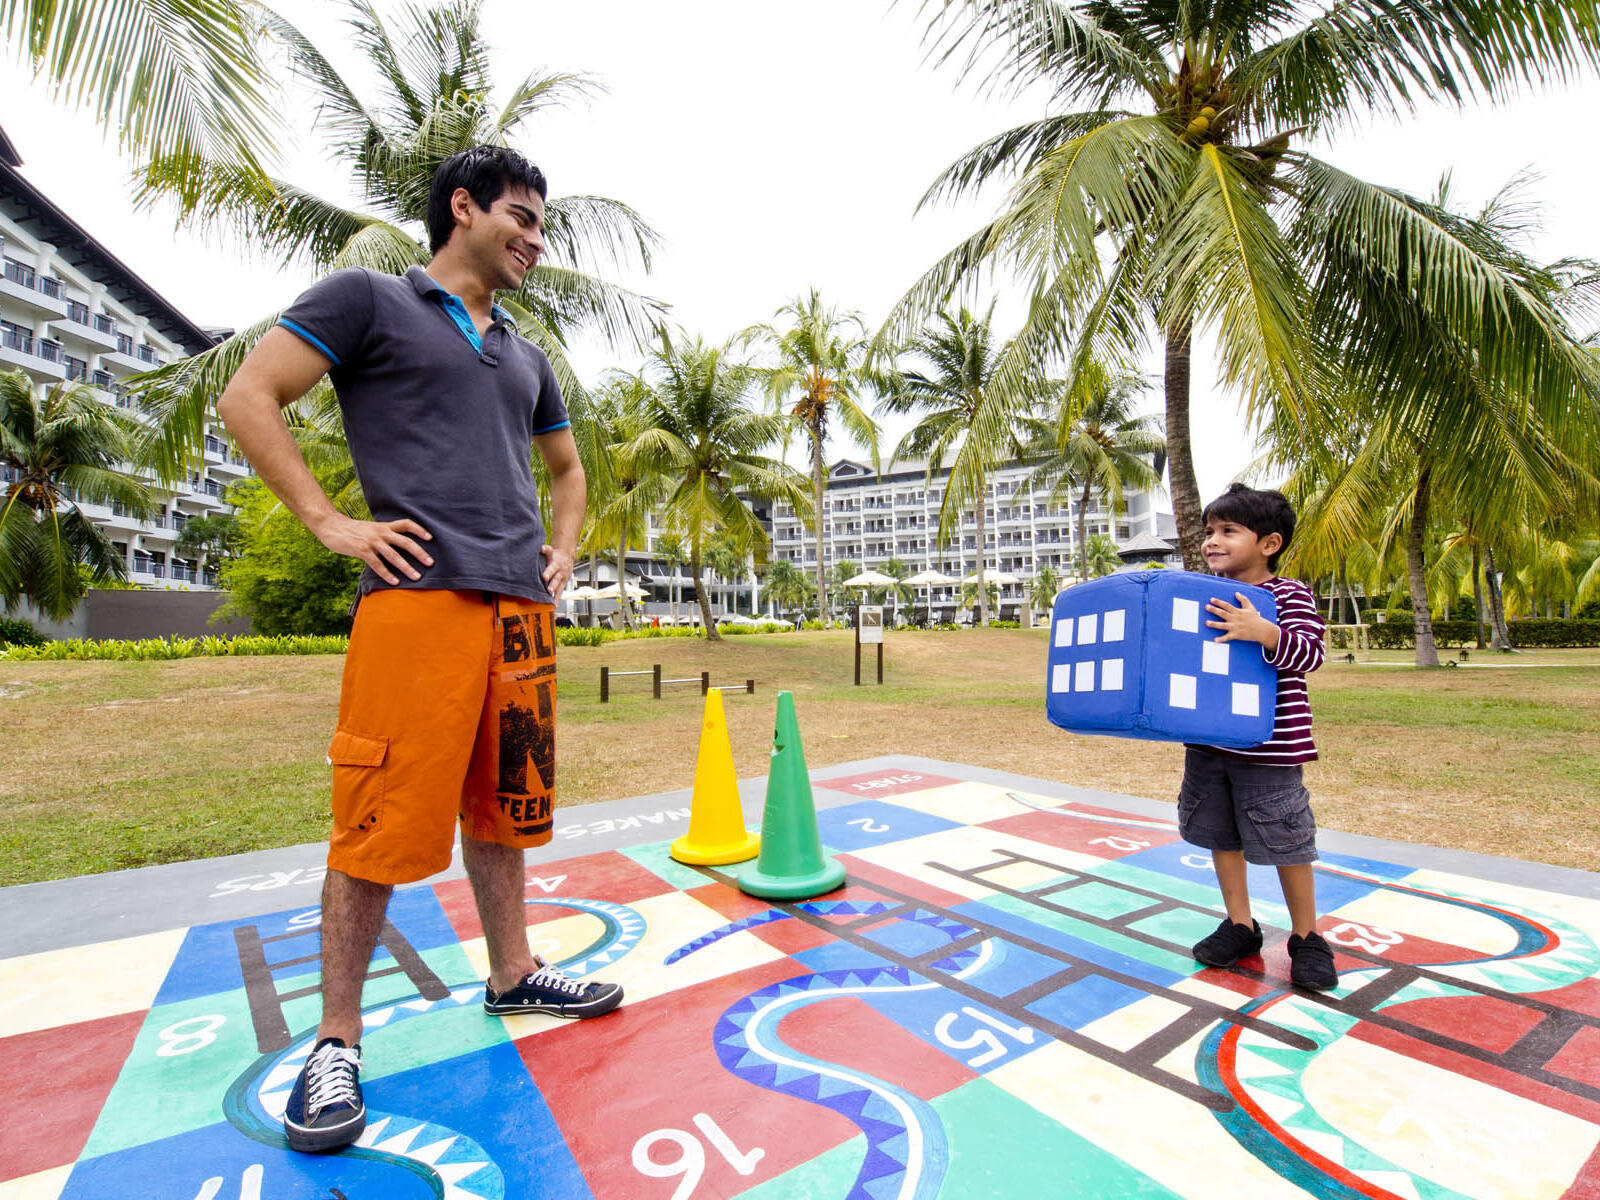 A man and a kid playing life size snake and ladders